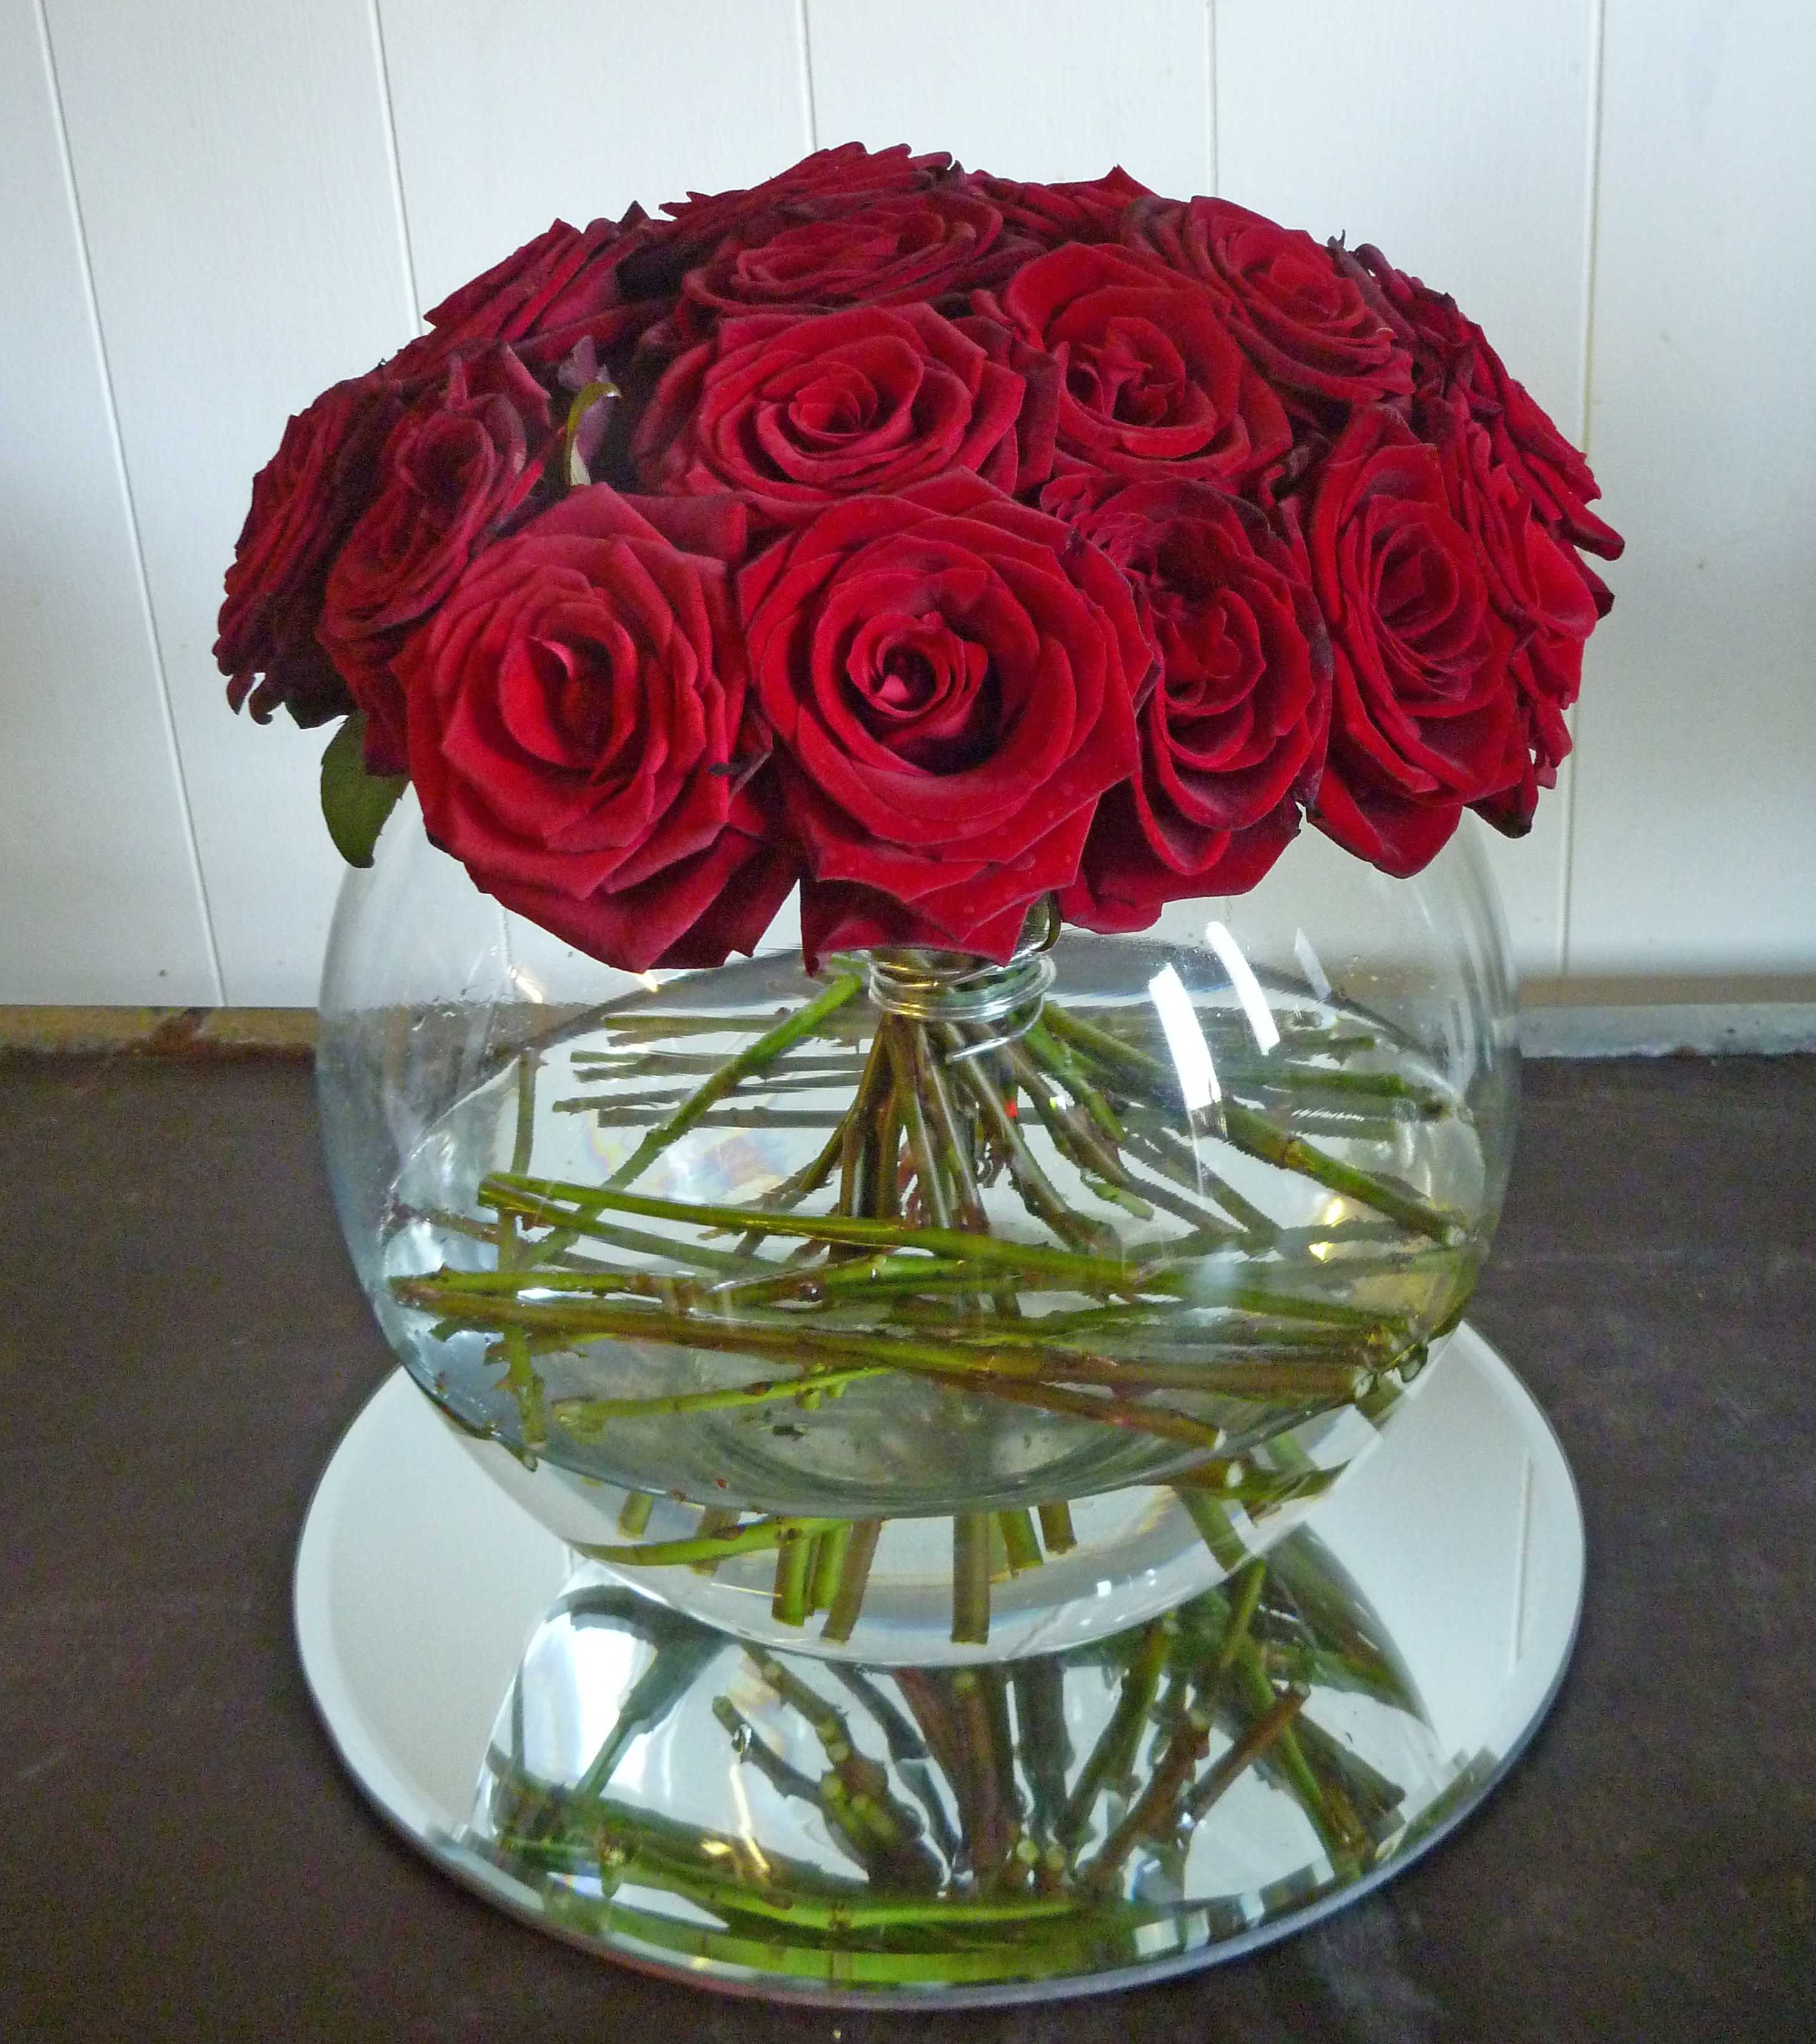 68VR Red Rose, Gold Fish Bowl, Mirror Plate | Gala | Pinterest ...